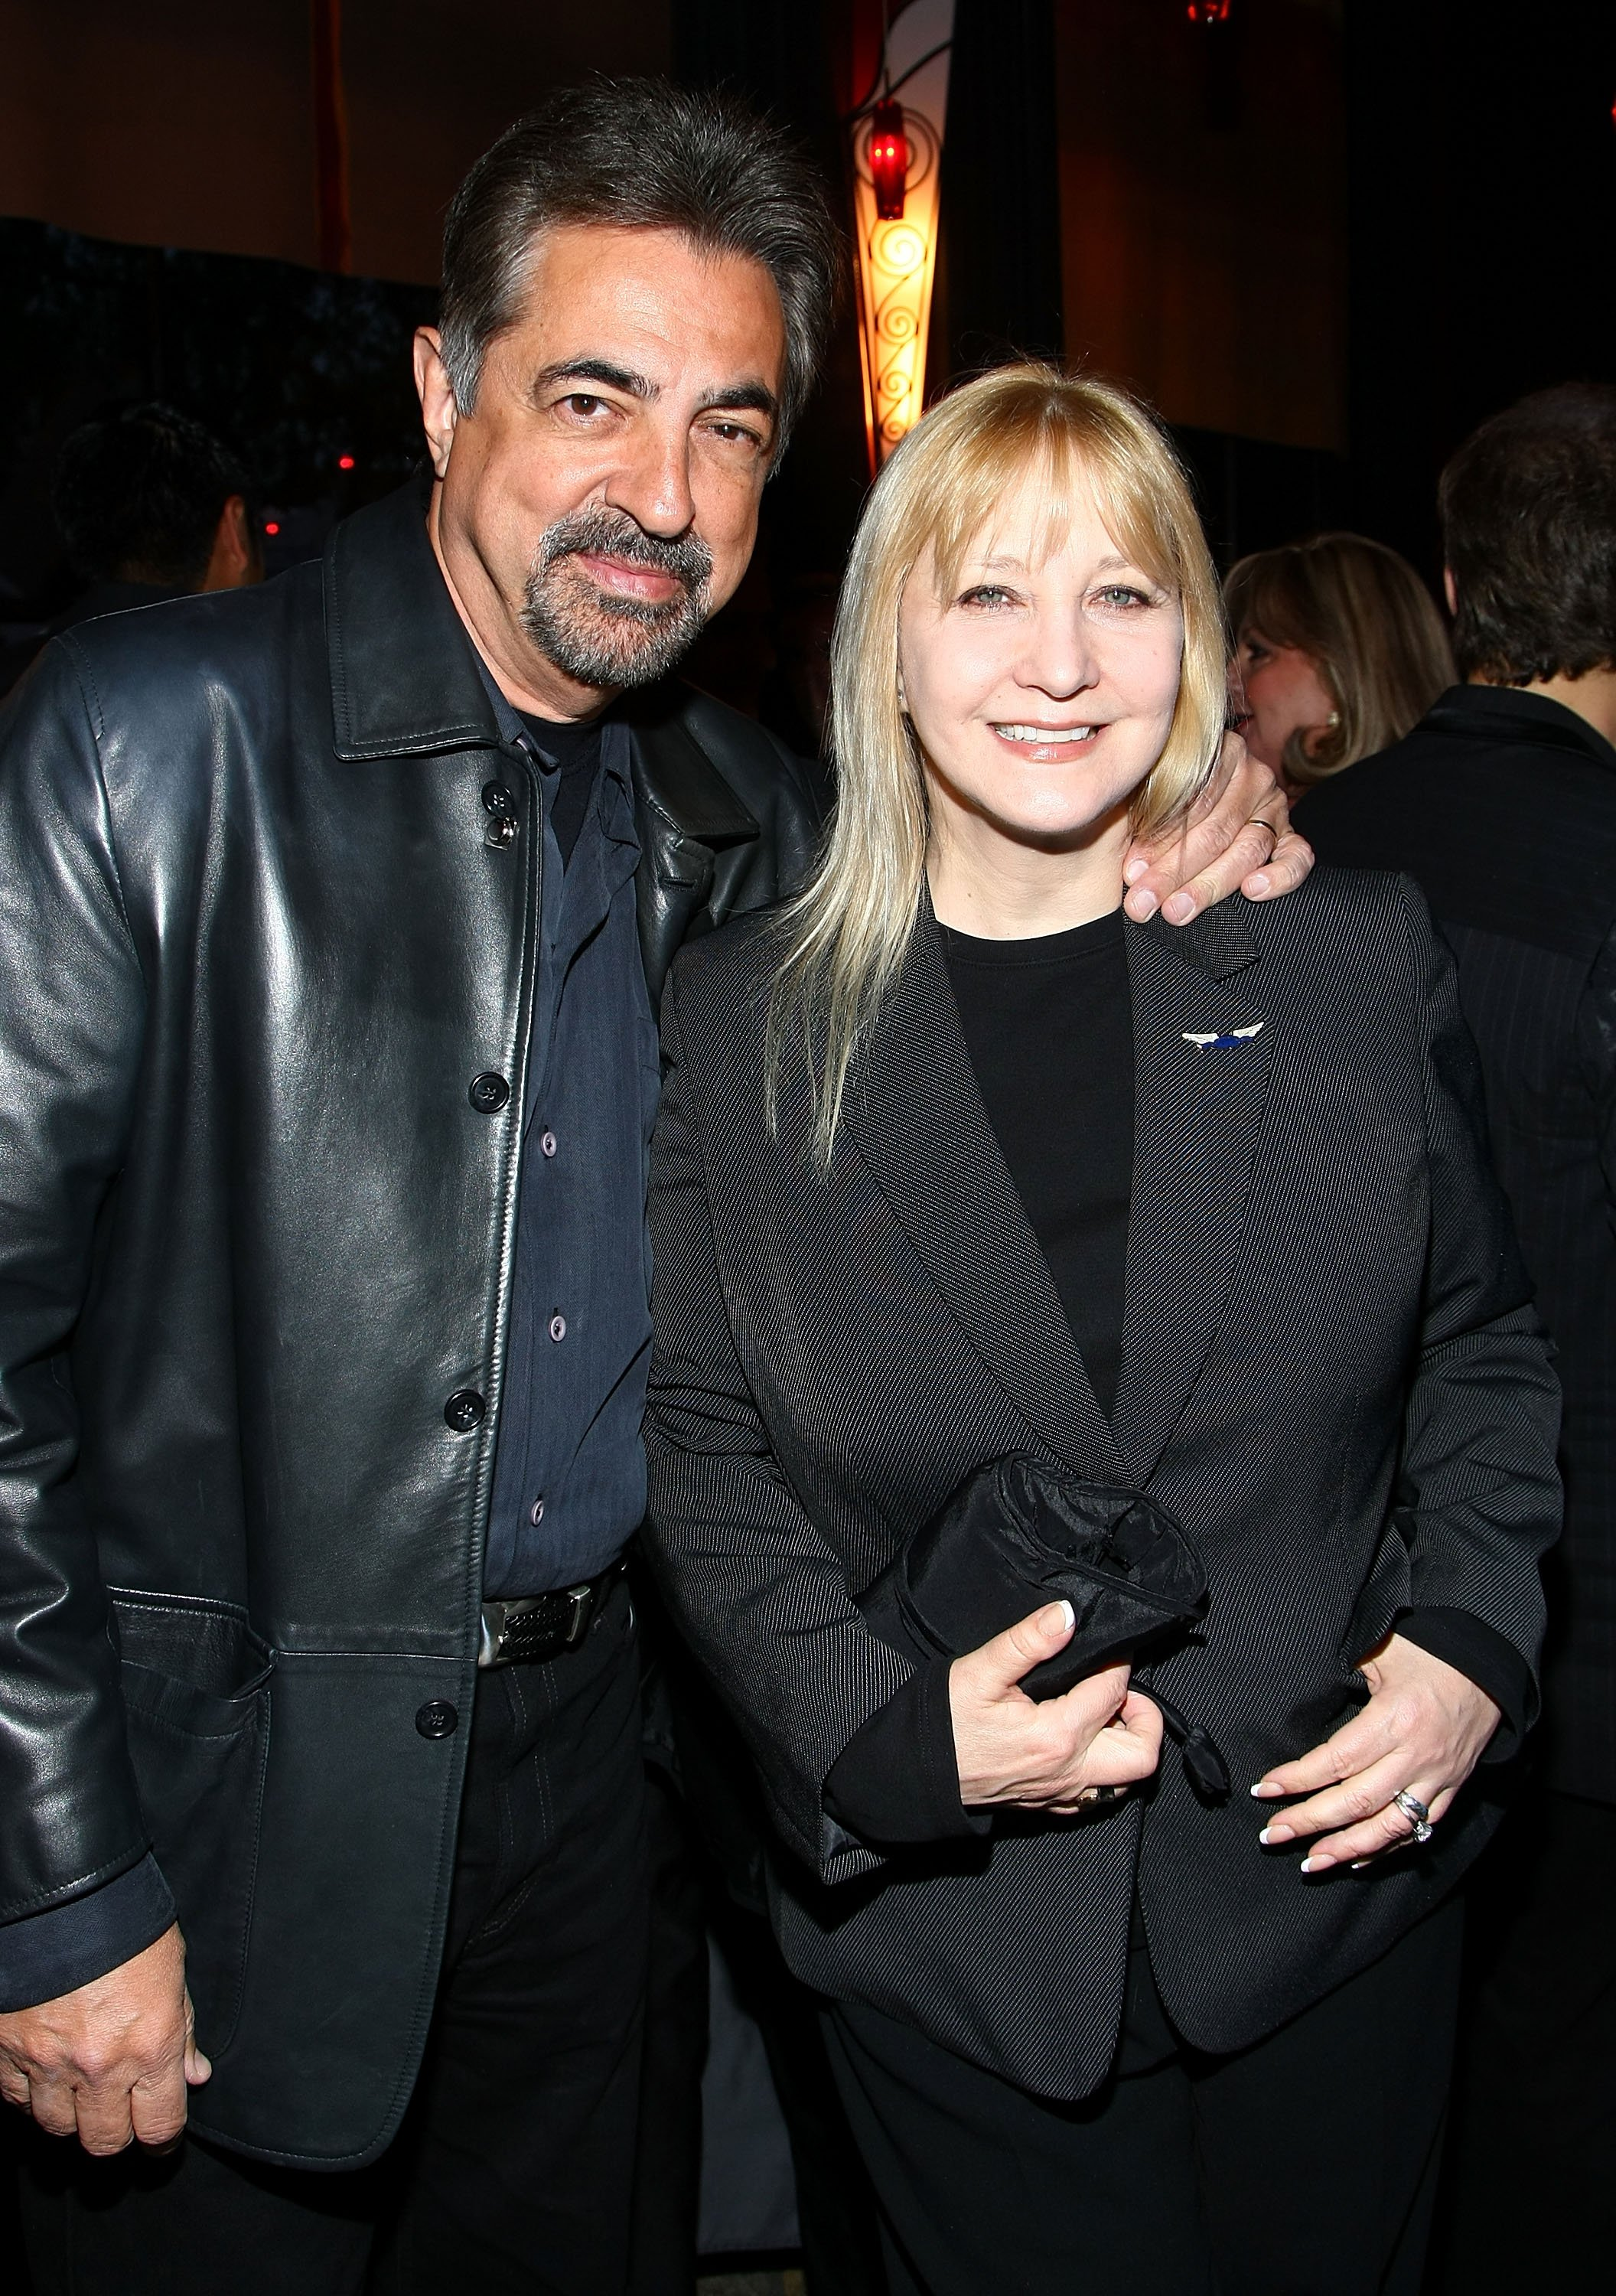 Joe Mantegna and wife Arlene Vrhel attend The Tonys Go Hollywood event. Getty Images